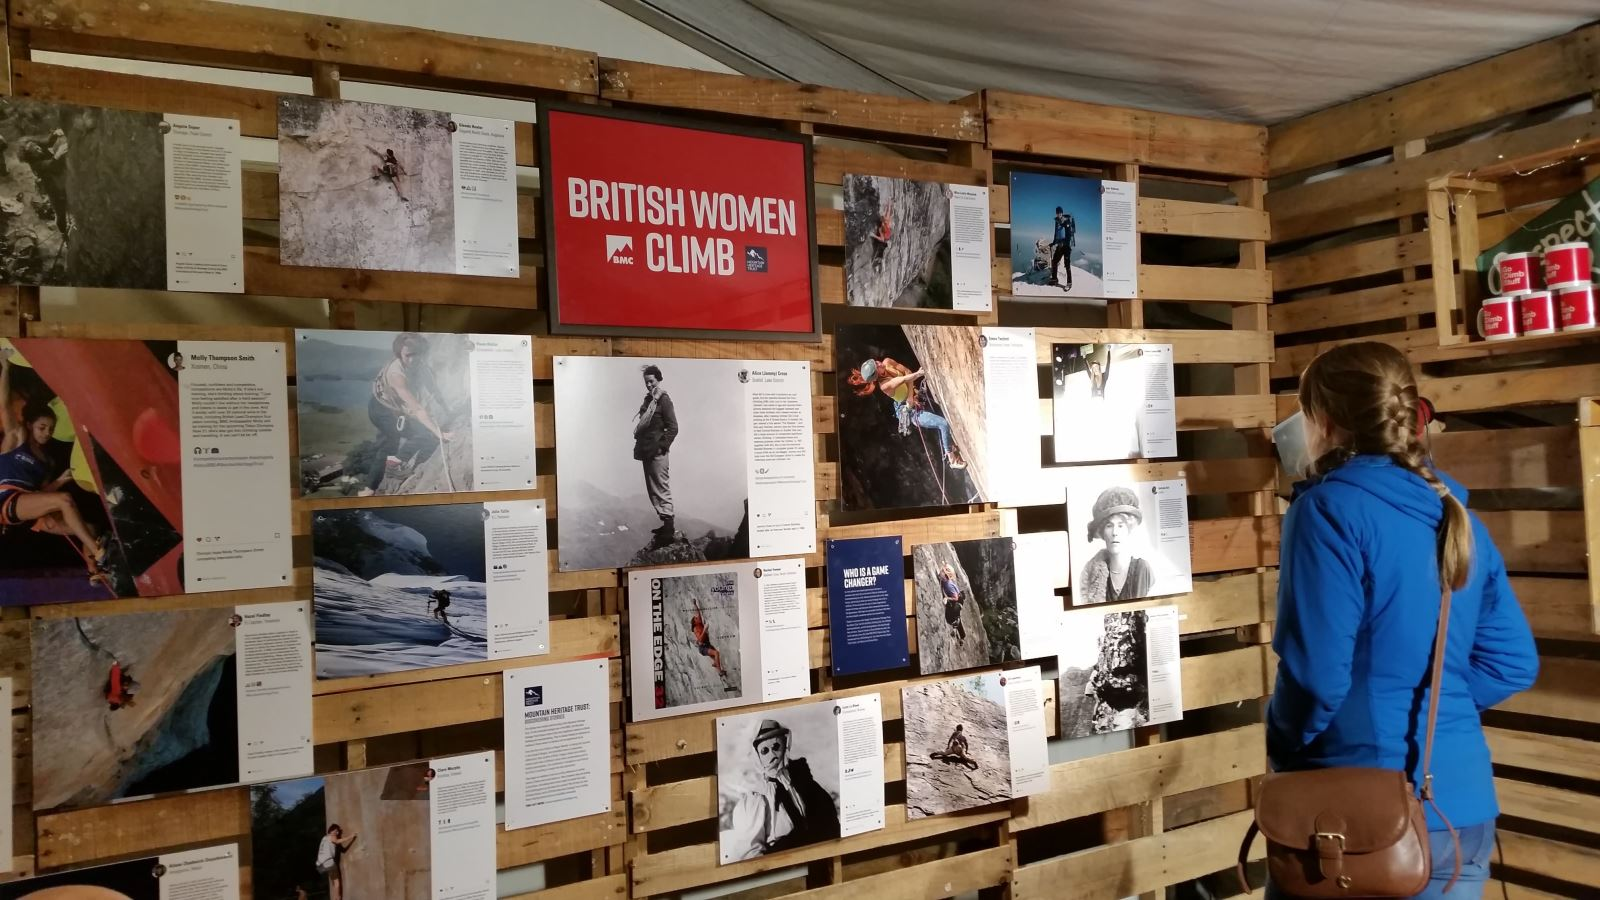 British Women Climb exhibition at Kendal Mountain Festival 2018